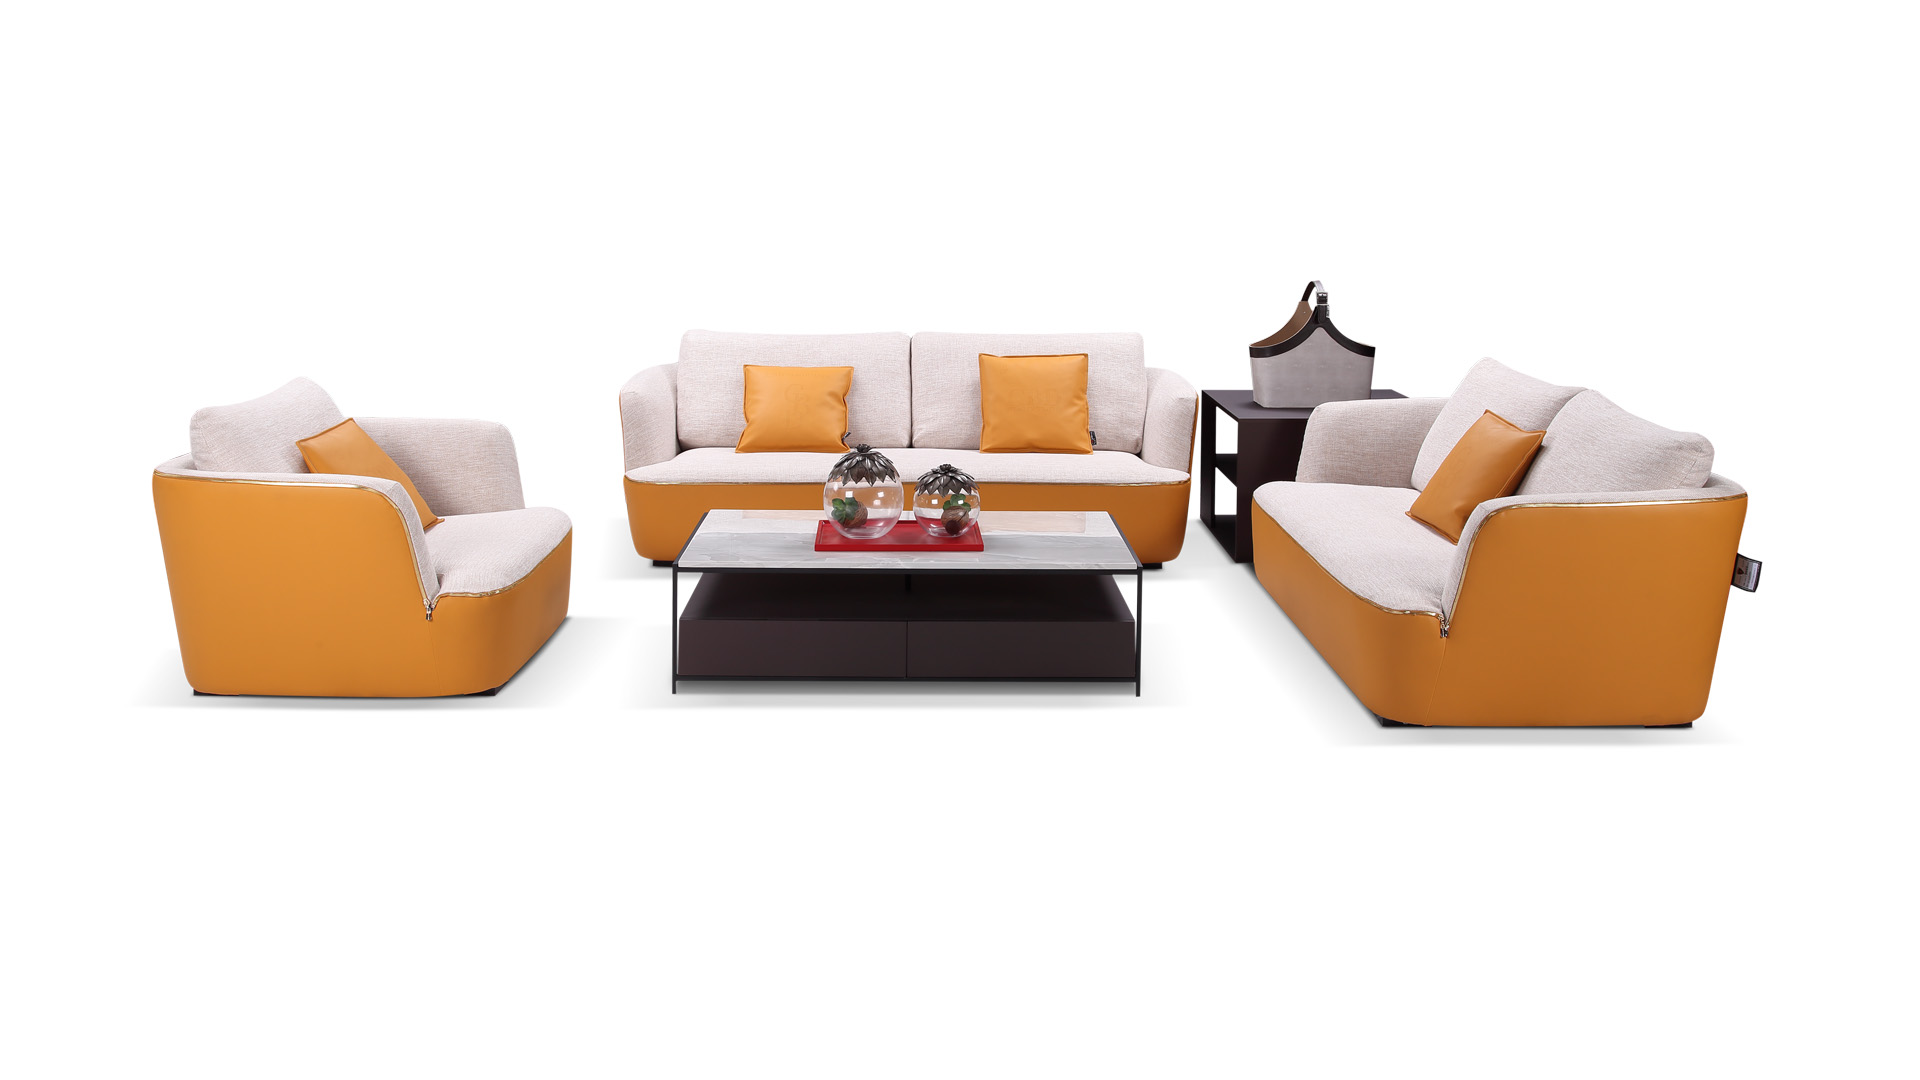 <p>Specification:</p><p>*1 SEATER:109*101*84mm</p><p>*2 SEATER:180*101*84mm</p><p>*3 SEATER:220*101*84mm</p>